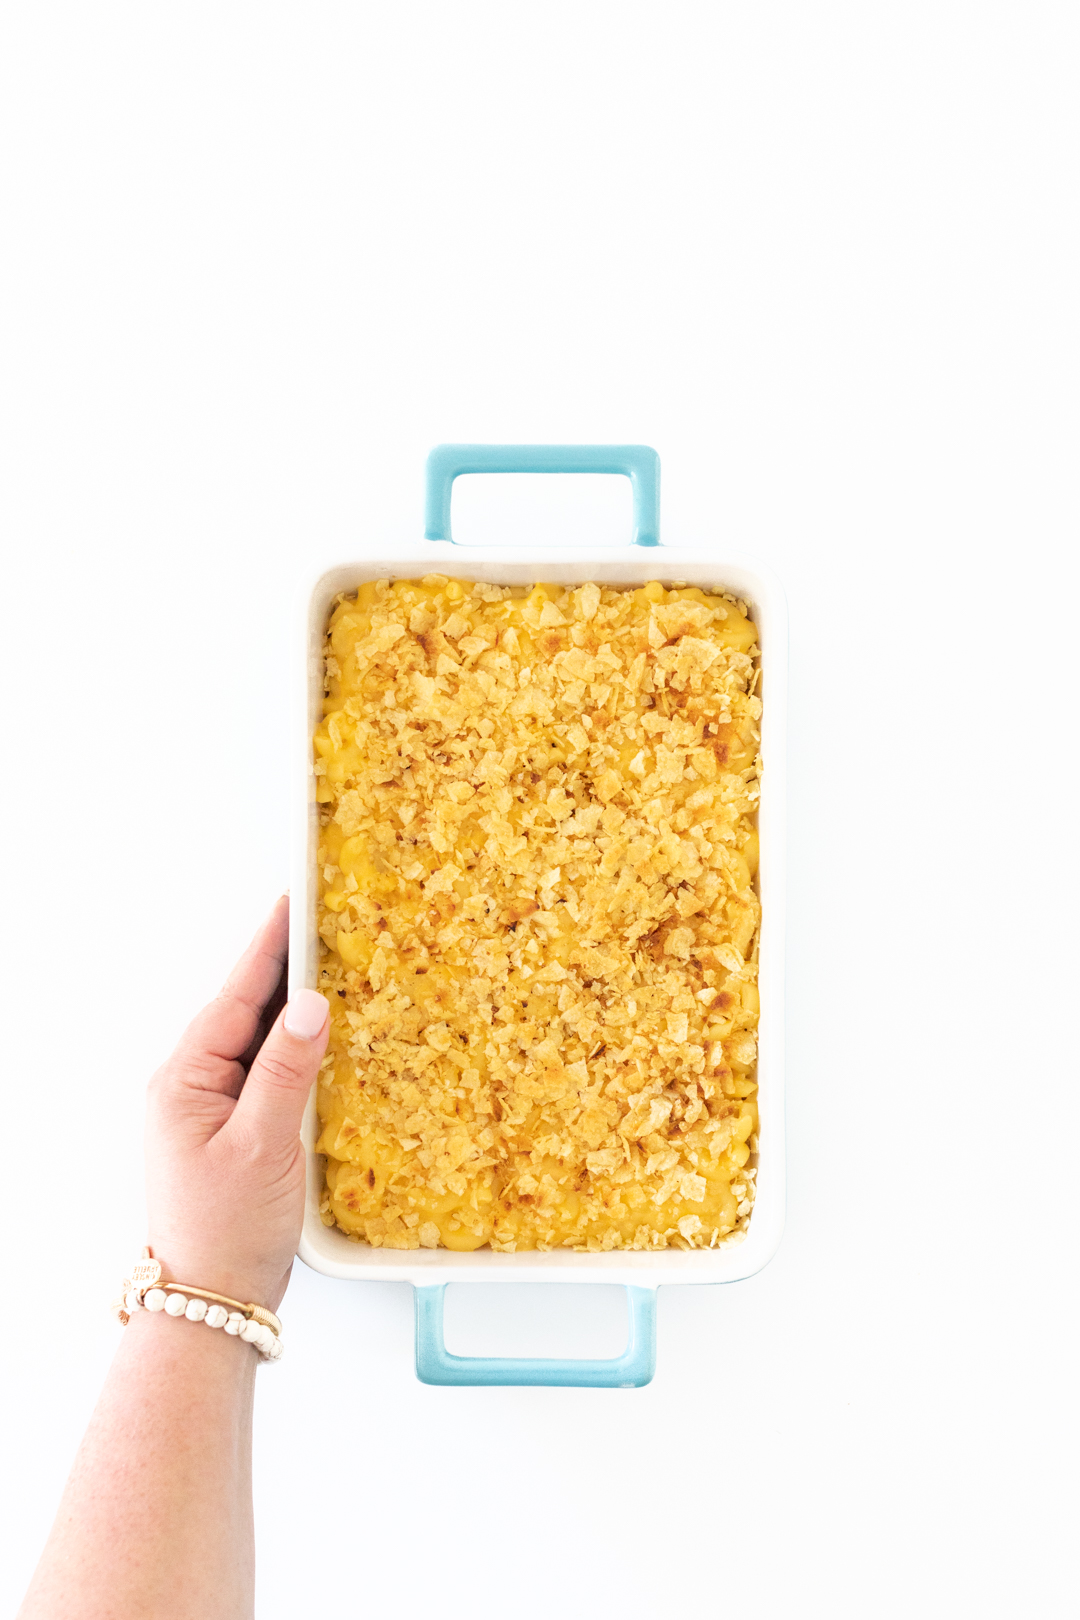 tray of baked macaroni and cheese